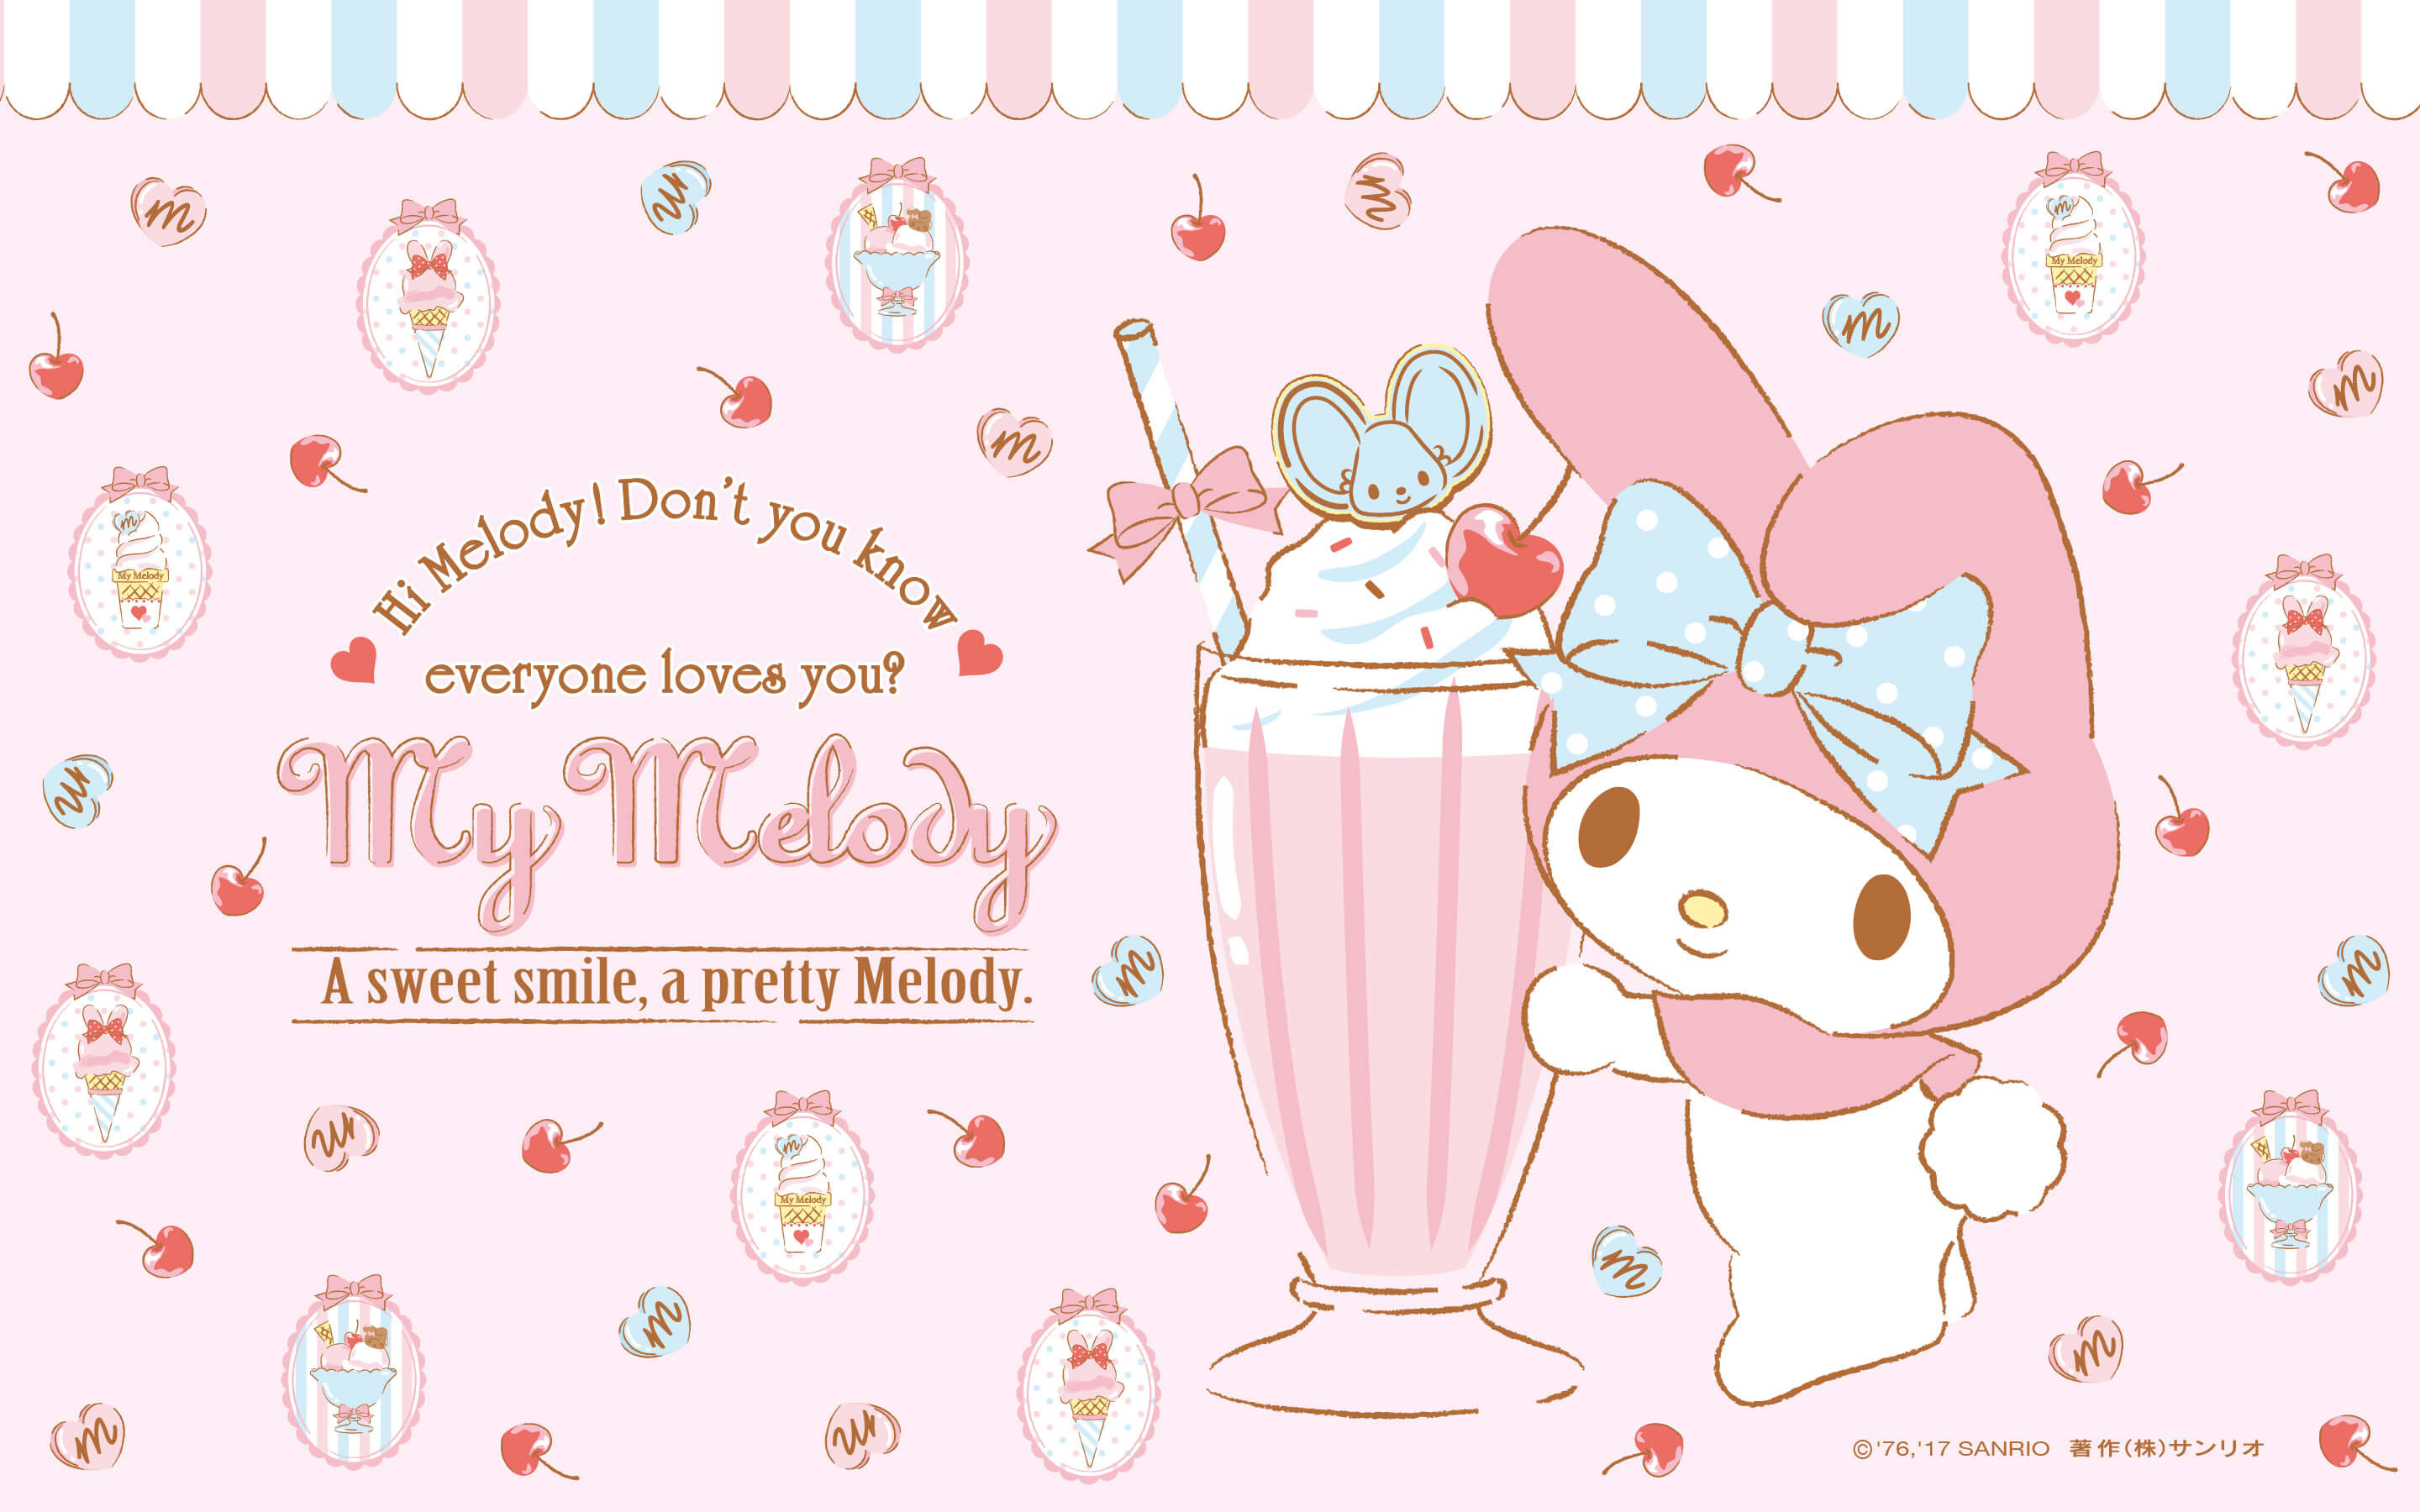 Sanrio Desktop Wallpaper Posted By Ethan Cunningham